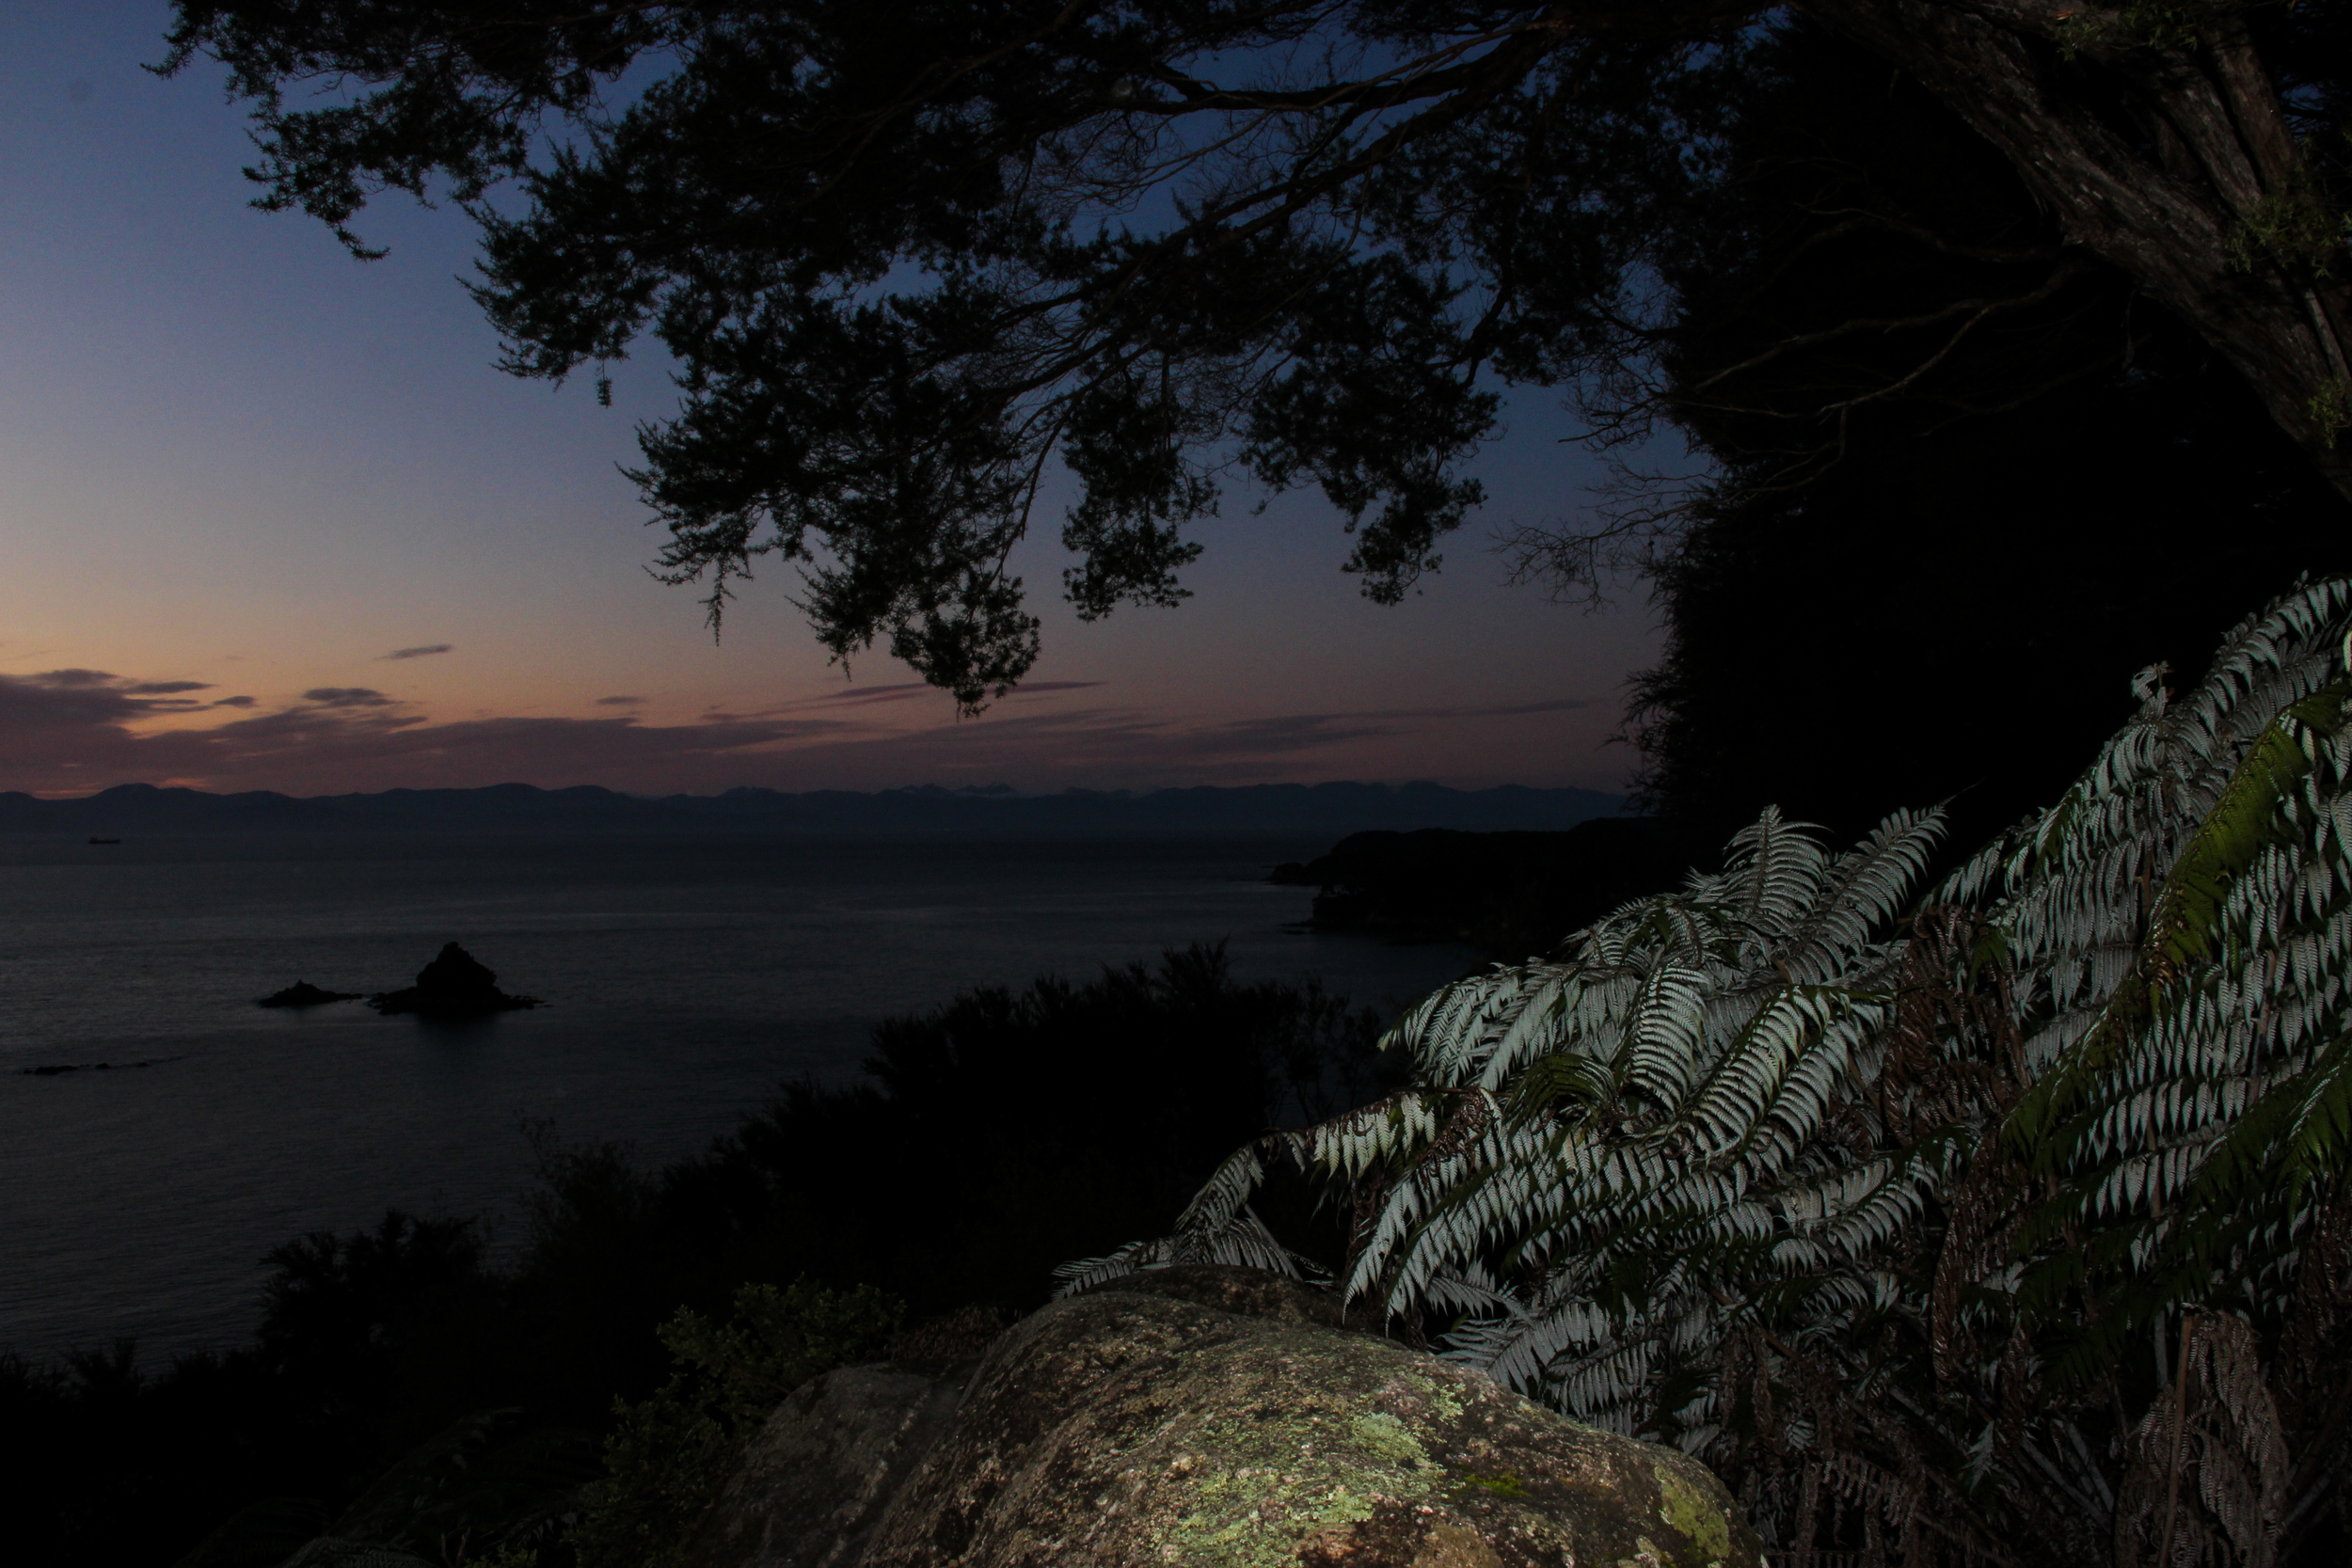 The sun rises over the Pacific Ocean's horizon, visible from an outcropping a 20 minute hike from Bark Bat Hut. I woke up early to catch the sunrise and savor the last hours before returning to civilization.